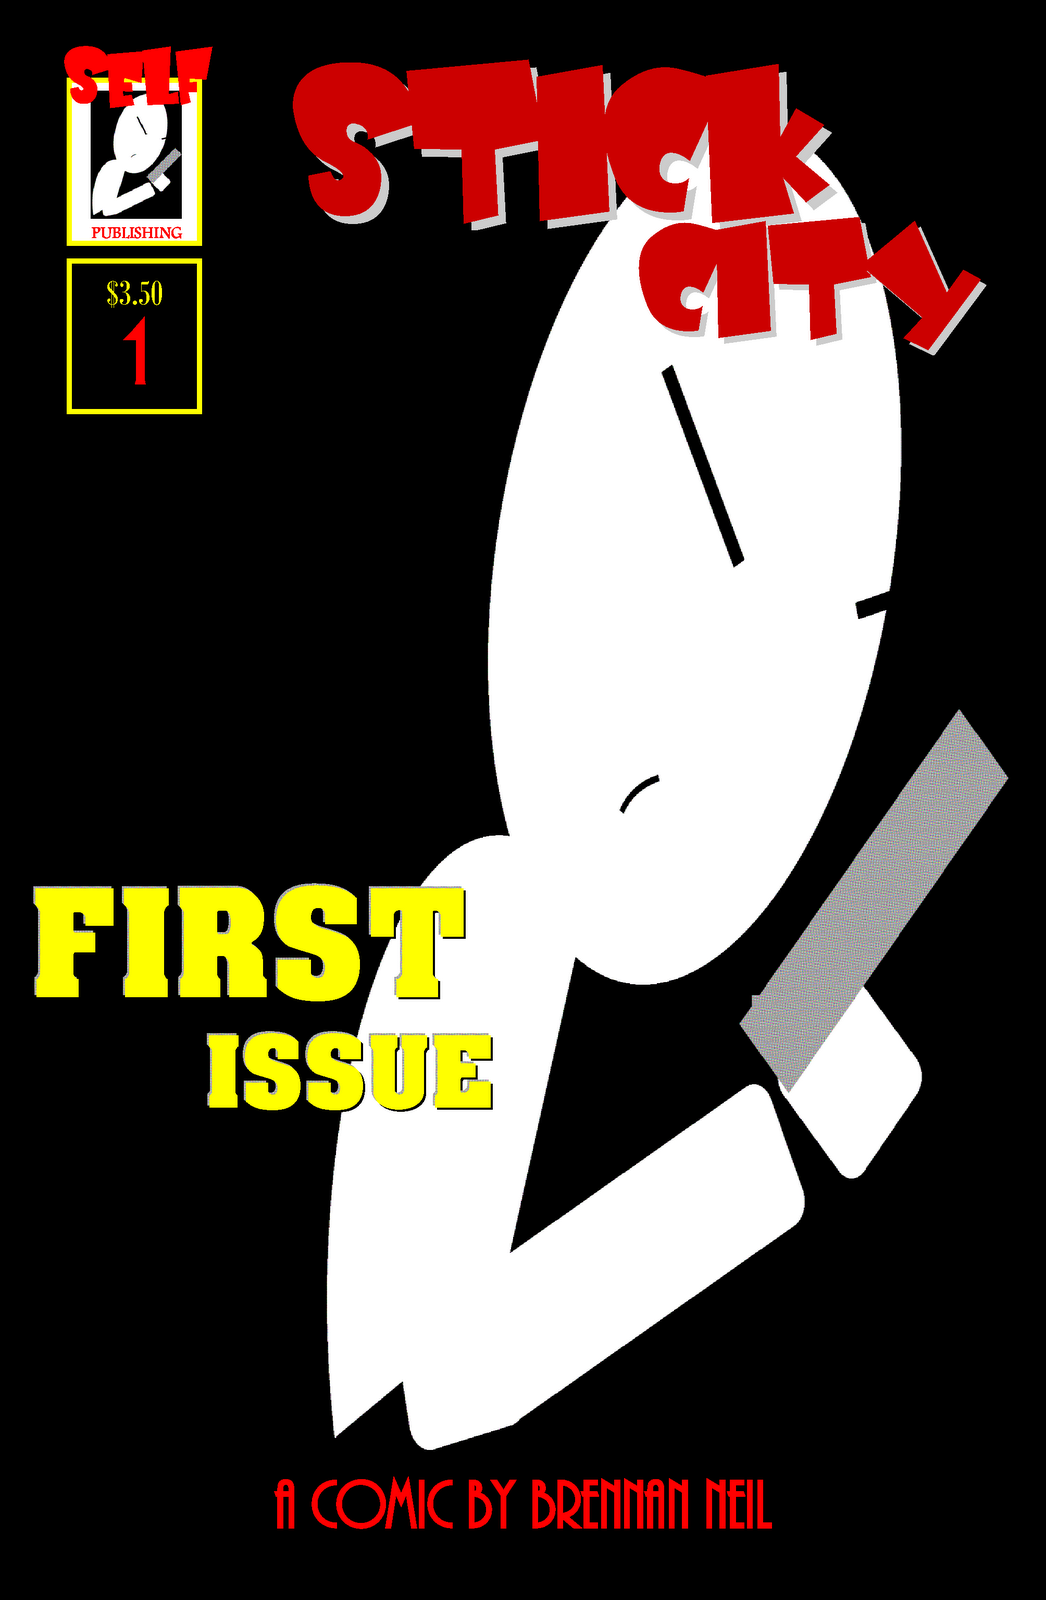 http://3.bp.blogspot.com/-sZIlj1ujcbA/TwpX839CyTI/AAAAAAAAV_Q/IiAGelIu2es/s1600/STICK+CITY+ISSUE+ONE1.png